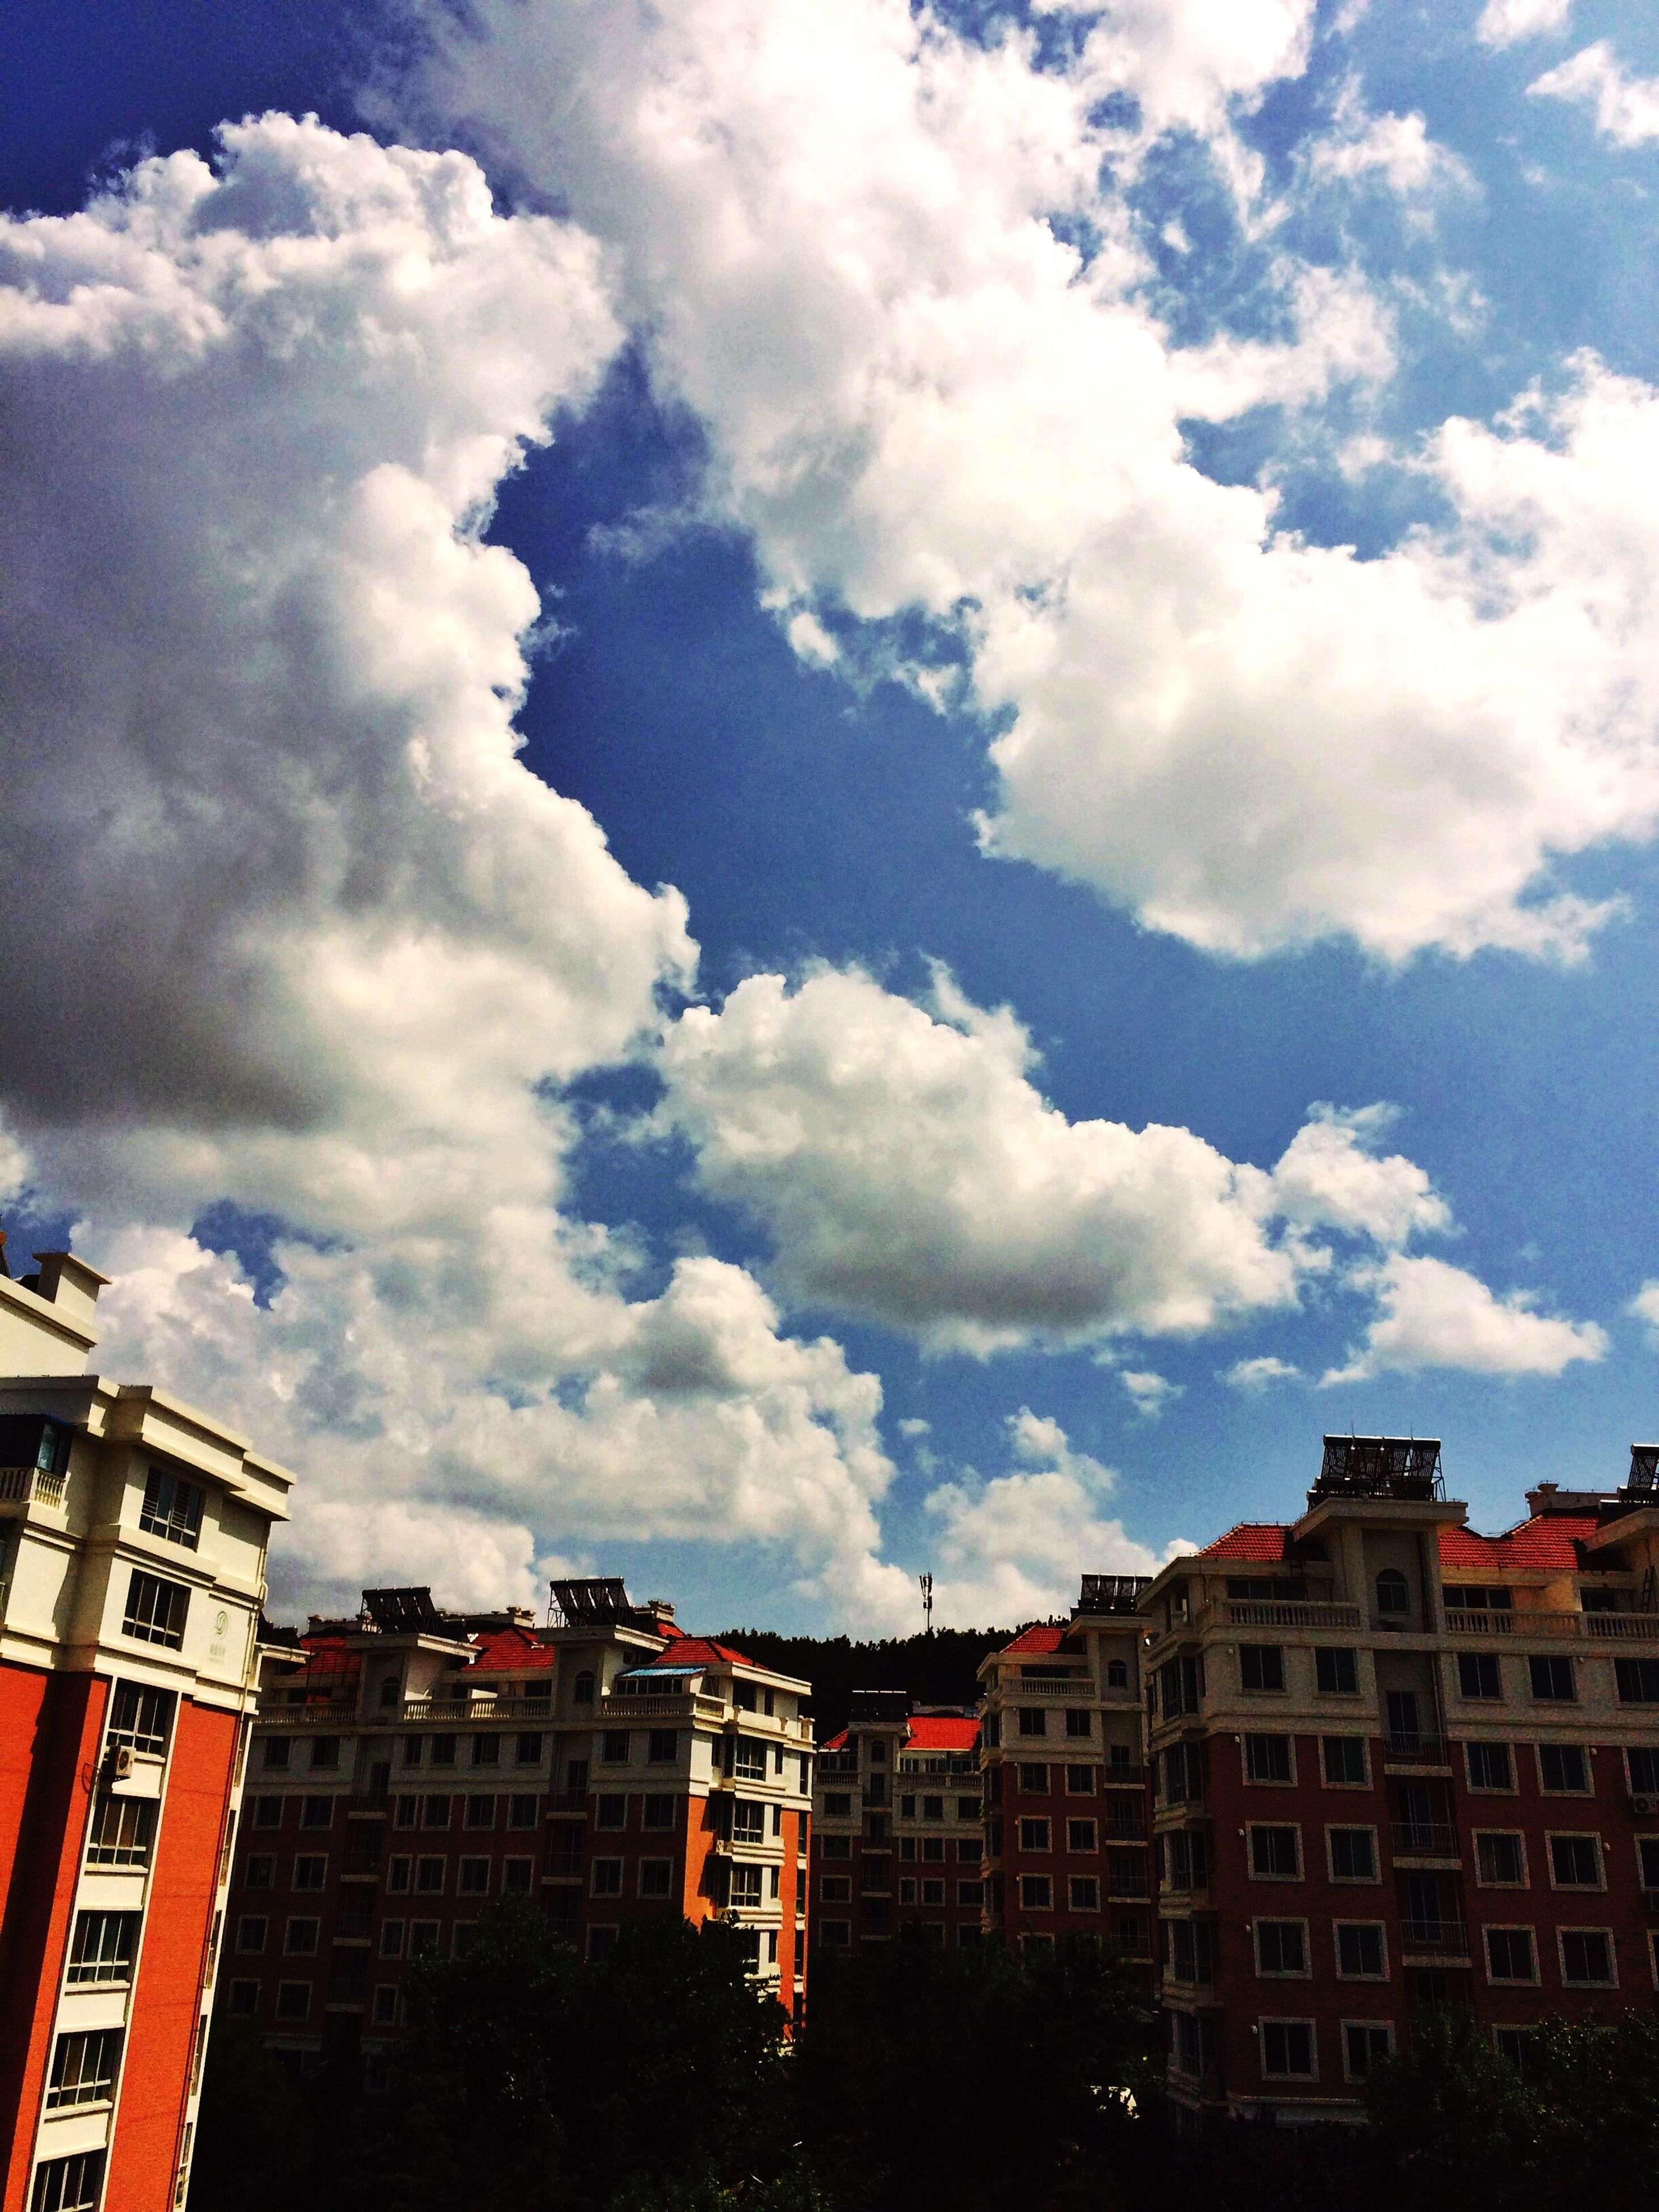 building exterior, architecture, built structure, sky, cloud - sky, low angle view, city, residential building, residential structure, cloudy, building, cloud, window, residential district, house, outdoors, day, high section, no people, apartment